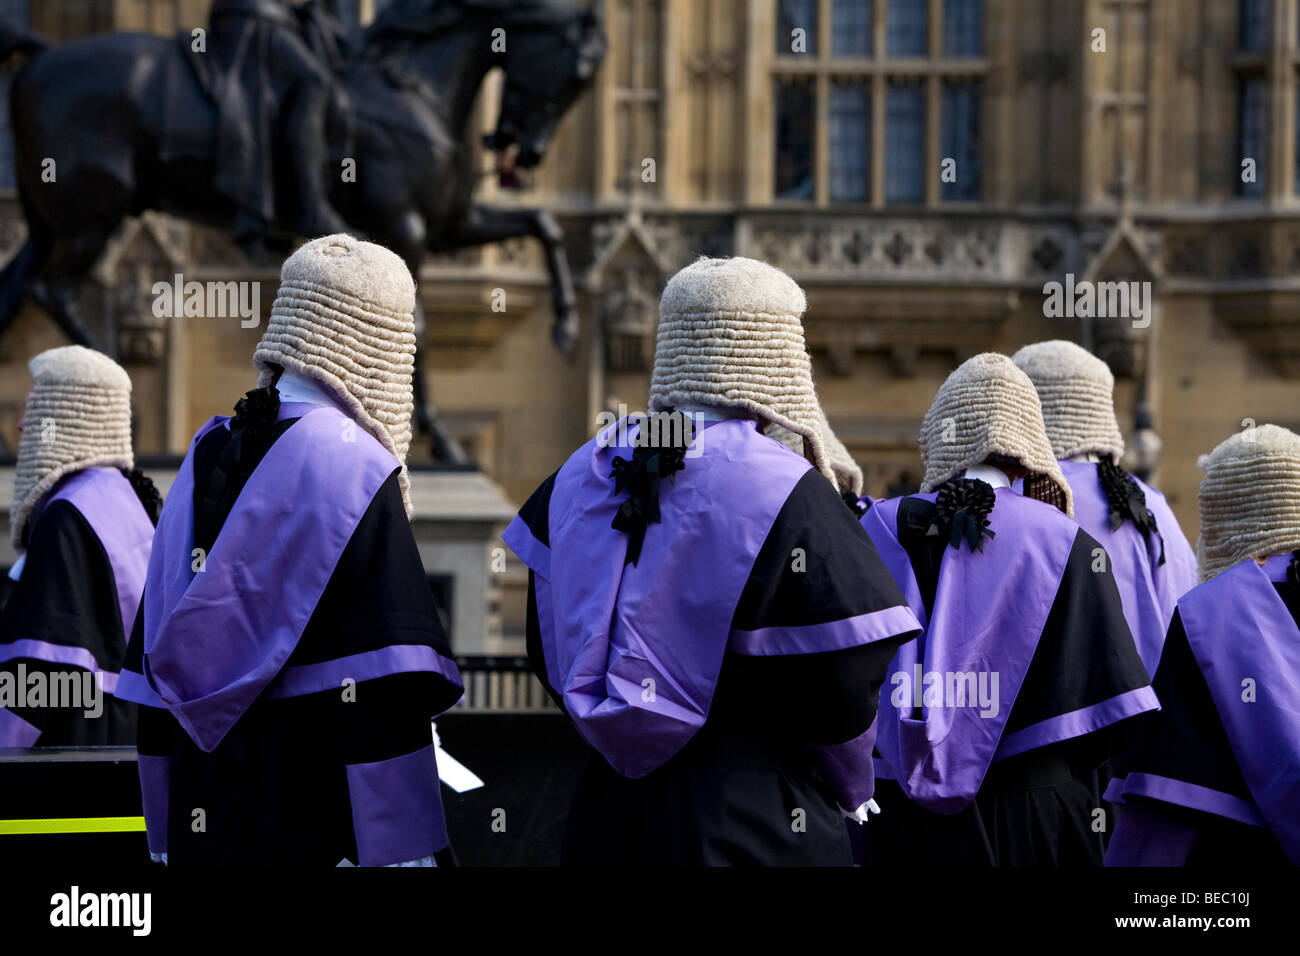 Judges Procession at Houses of Parliament in London - Stock Image